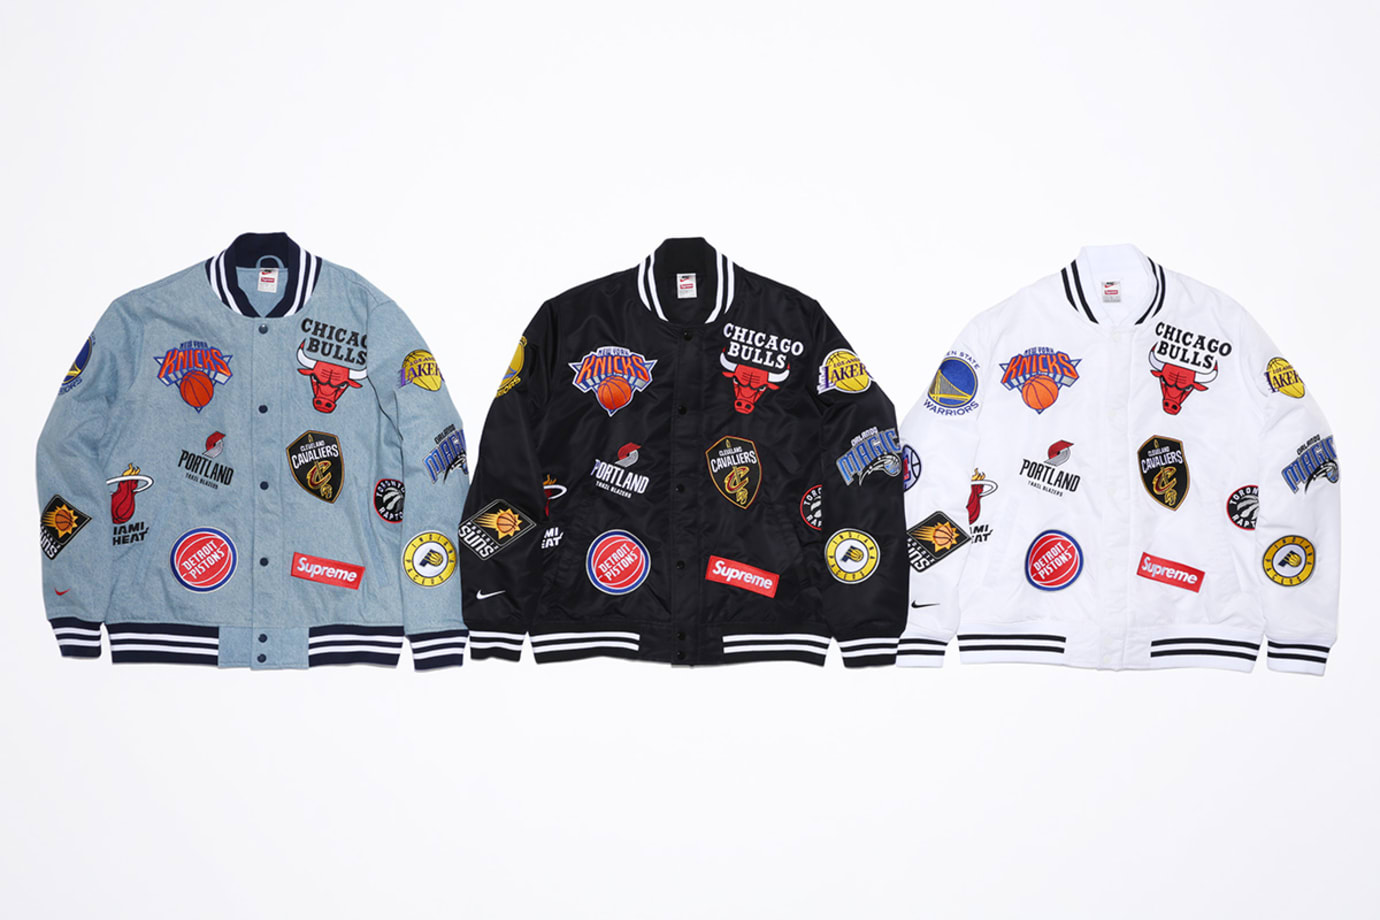 Supreme x Nike x NBA Warm-Up Jackets (Front)